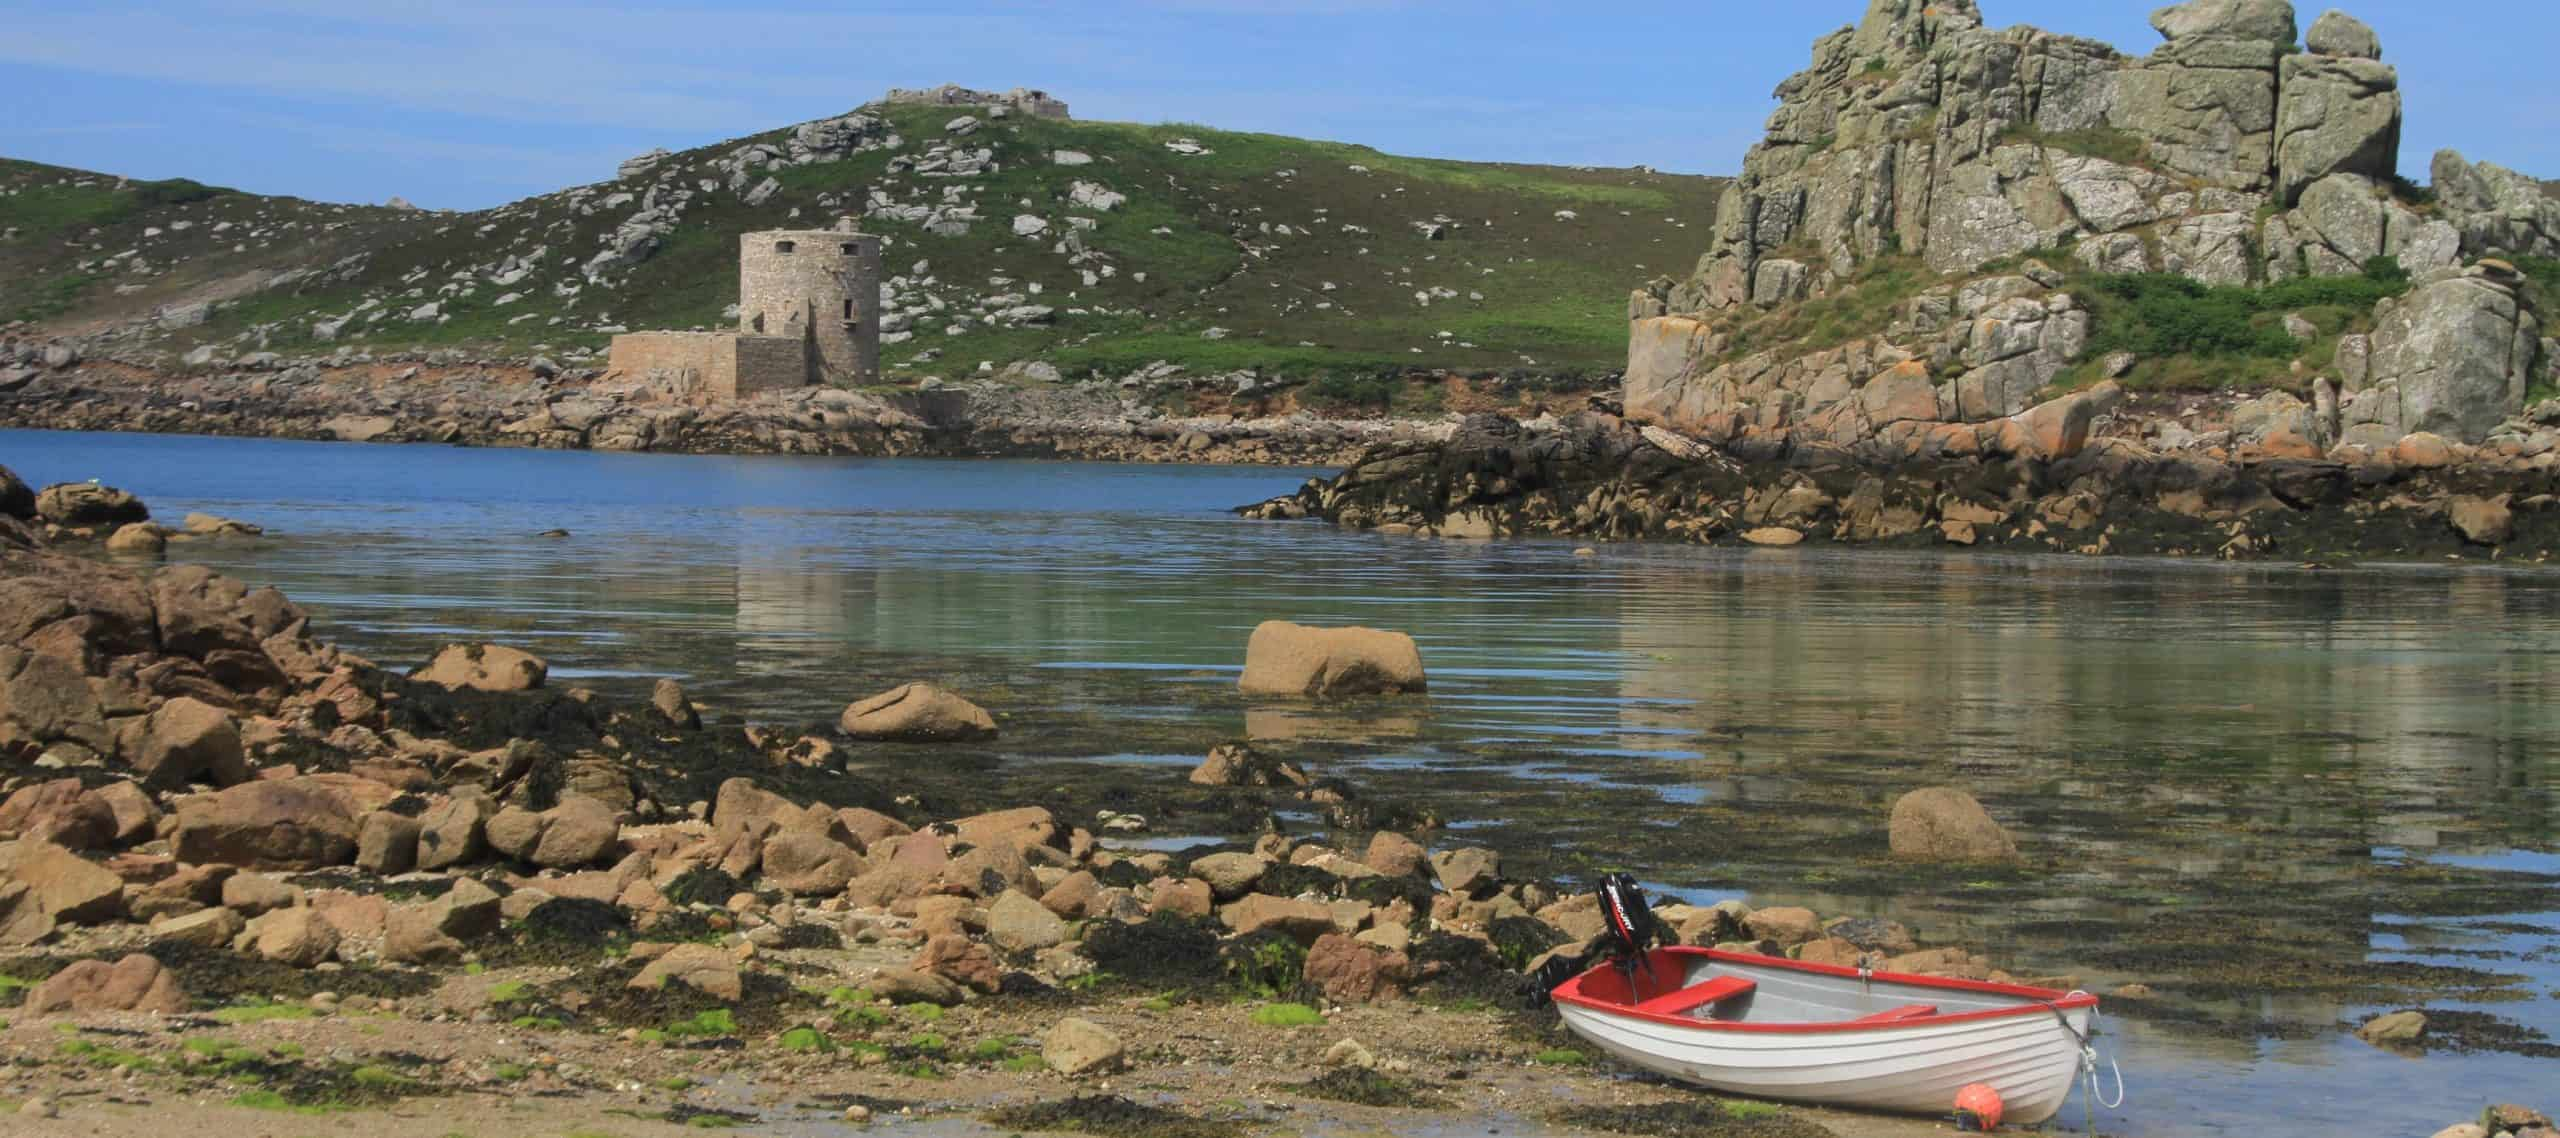 Explore the beautiful Isles of Scilly after the school holidays and relax on the Grayhound lugger